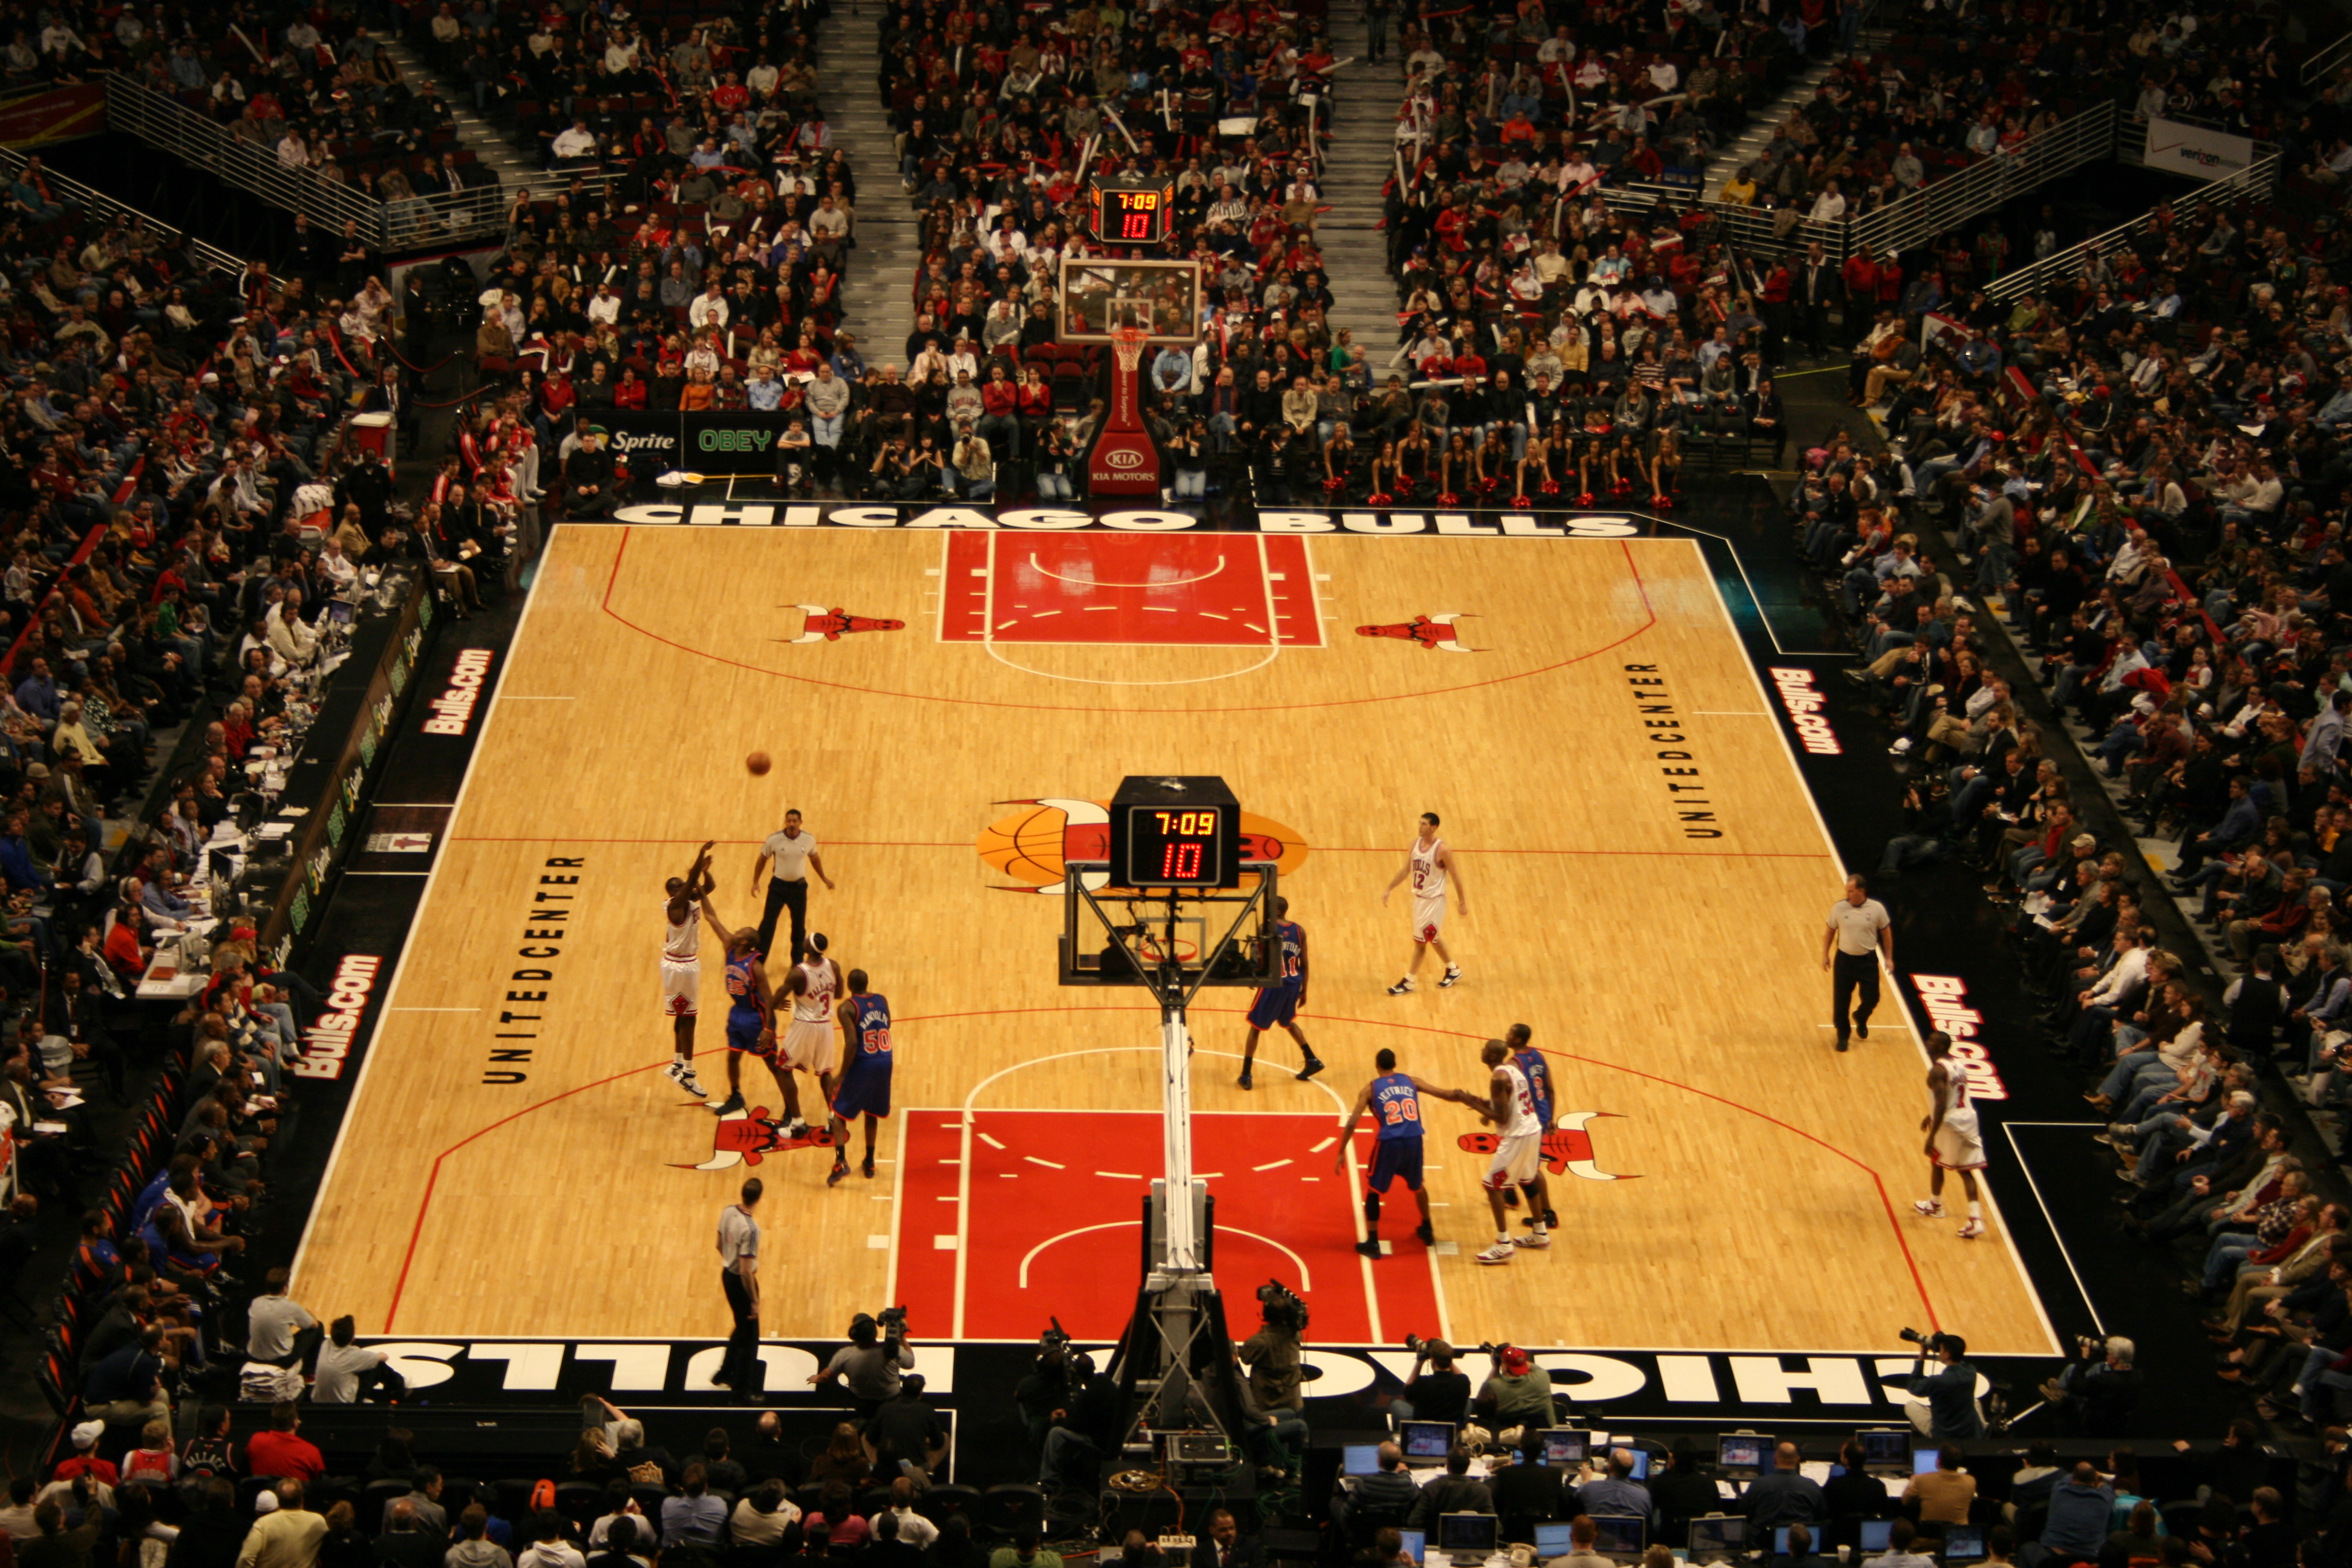 Nba basketball court pictures